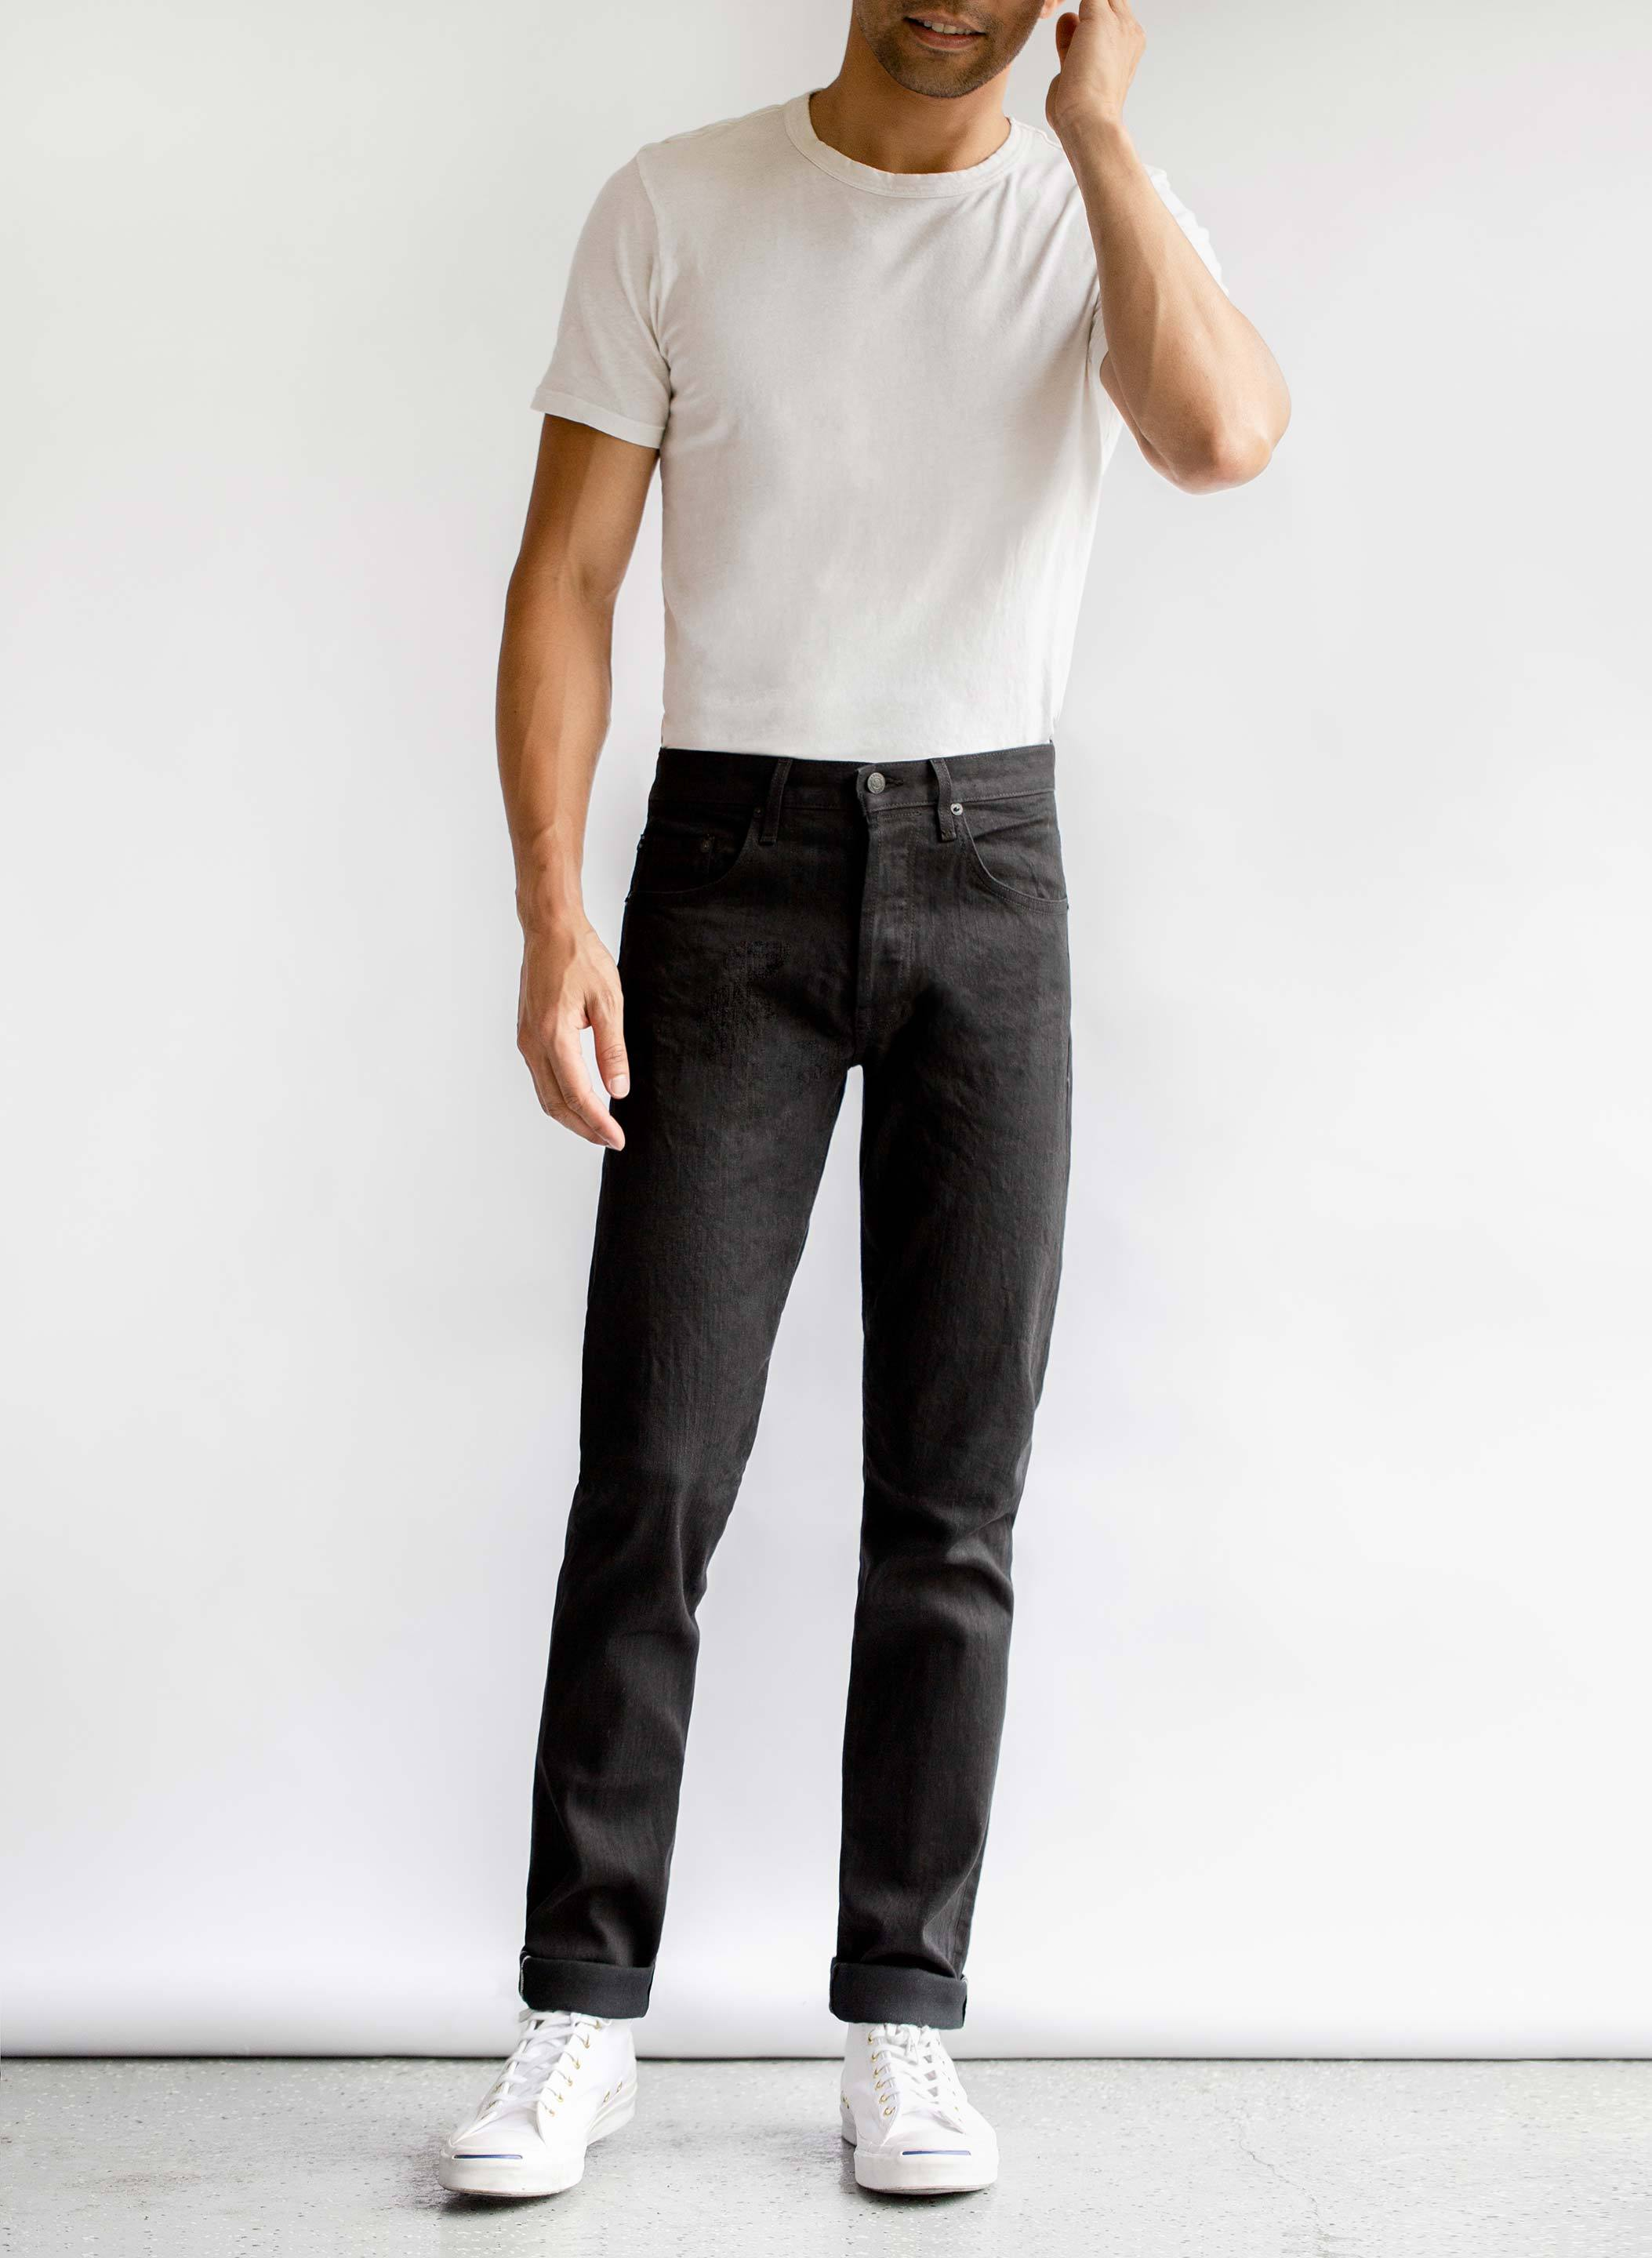 imogene + willie - barton slim black selvage rinse